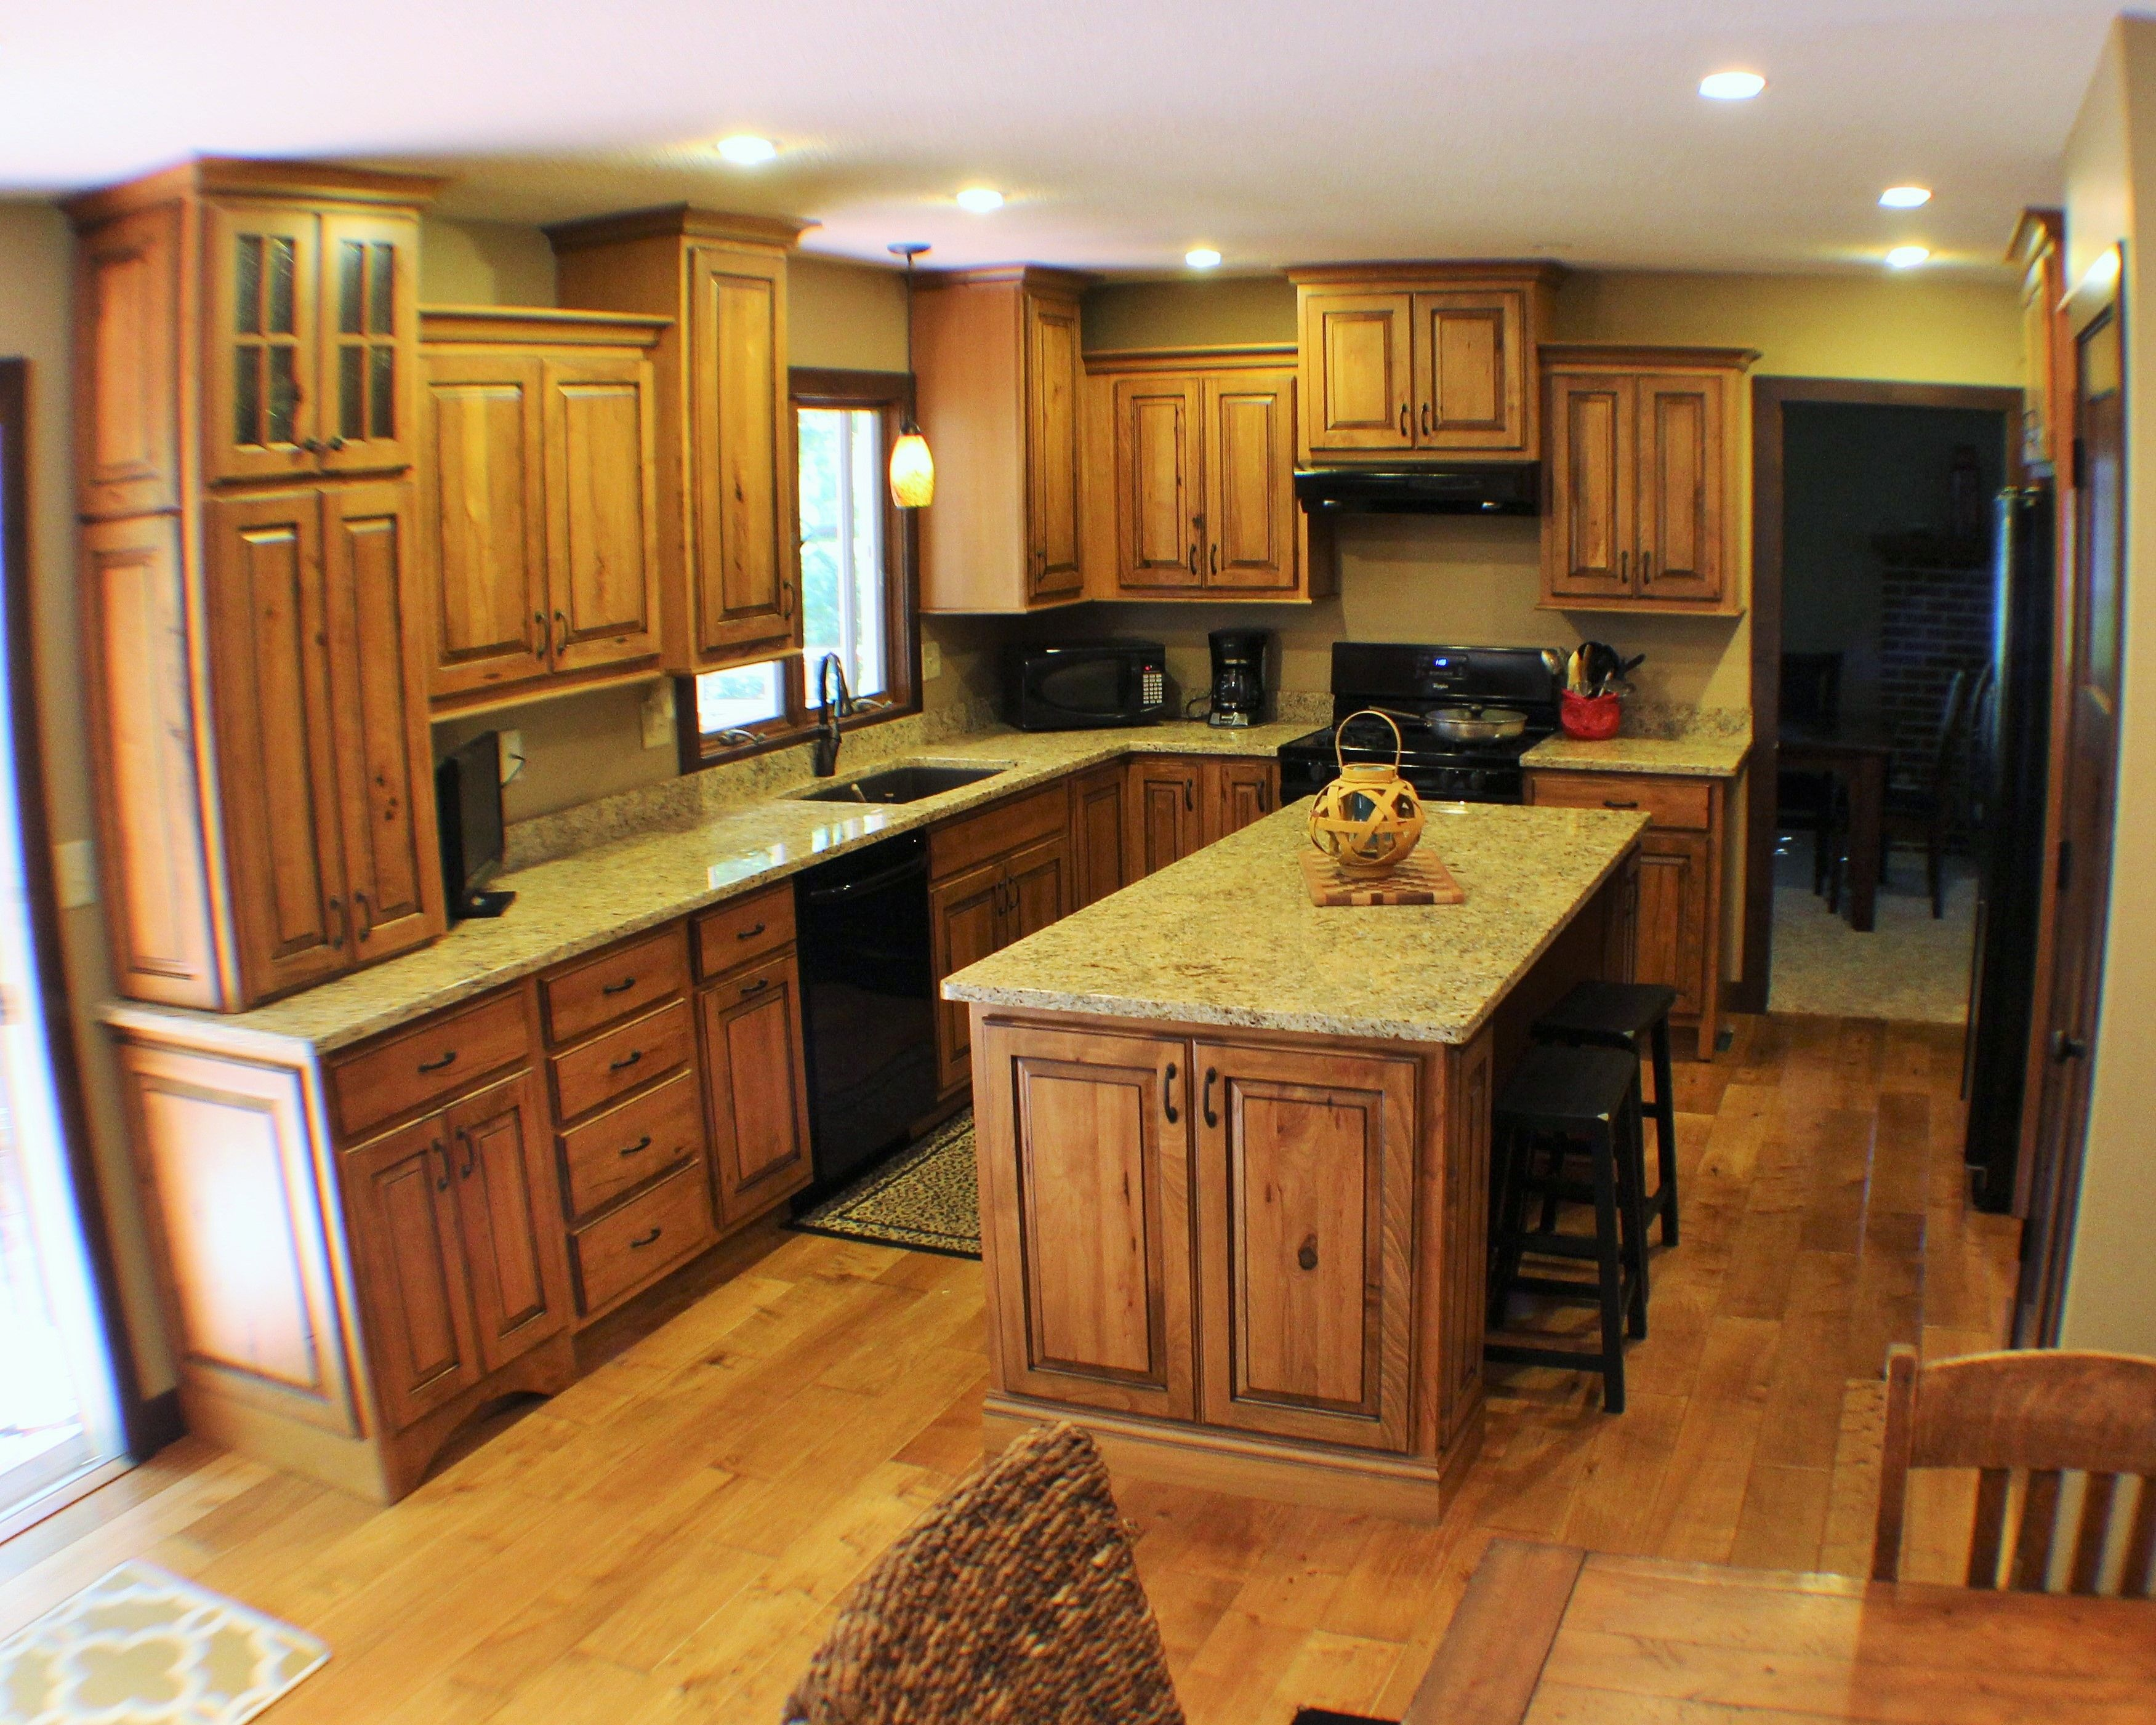 Rustic Beech Kitchen Remodel In Walnut Il By Village Home Stores Houzz Com Kitchen Remodel Traditional Kitchen At Home Store